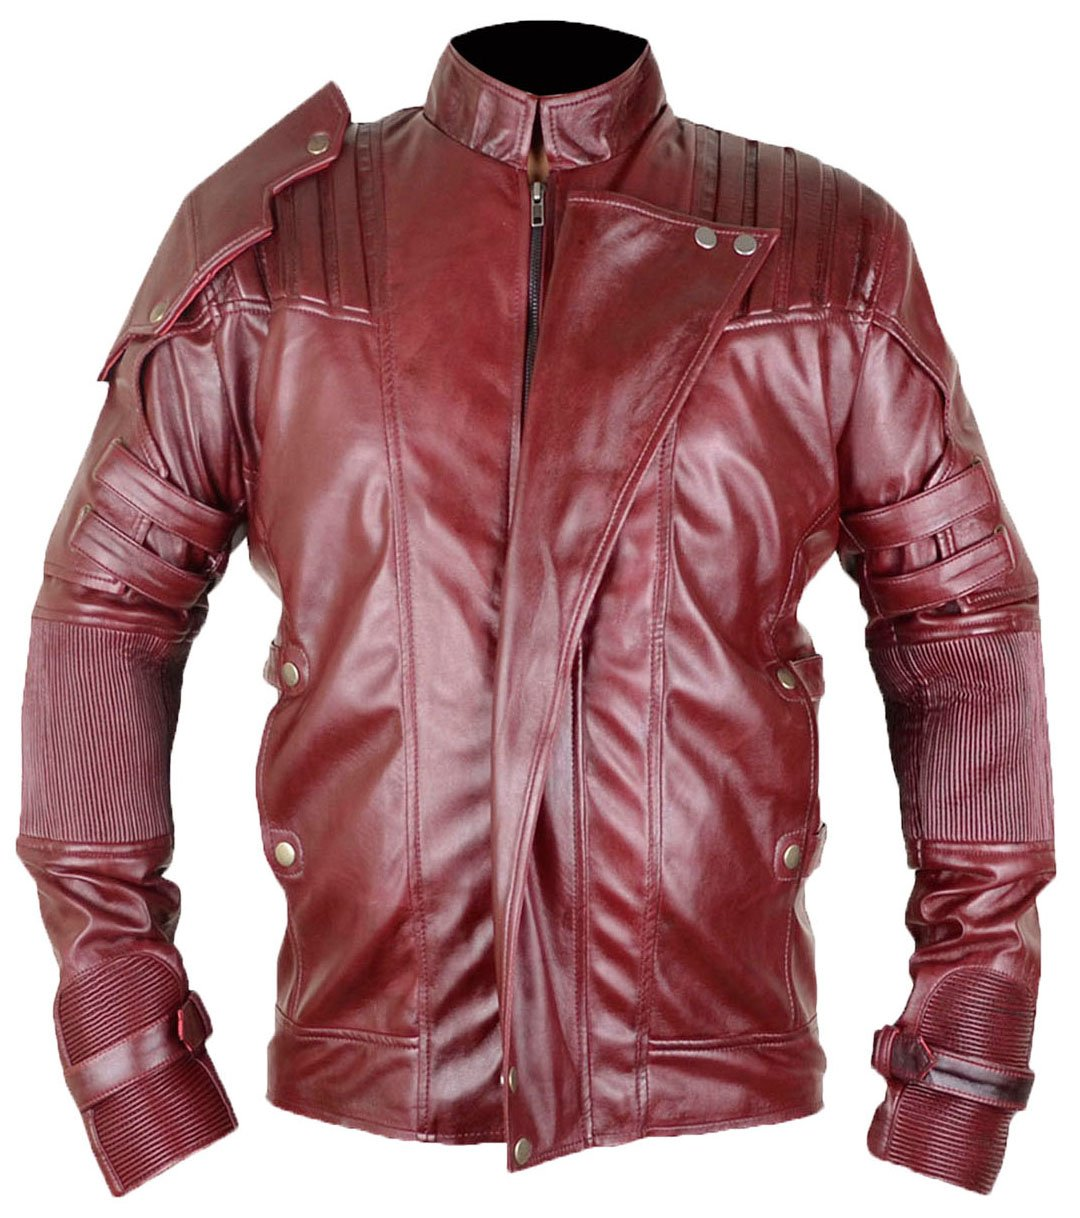 MSHC Guardians of The Galaxy 2 Star Lord Peter Jason quill Faux Leather Jacket Burgundy (Medium)